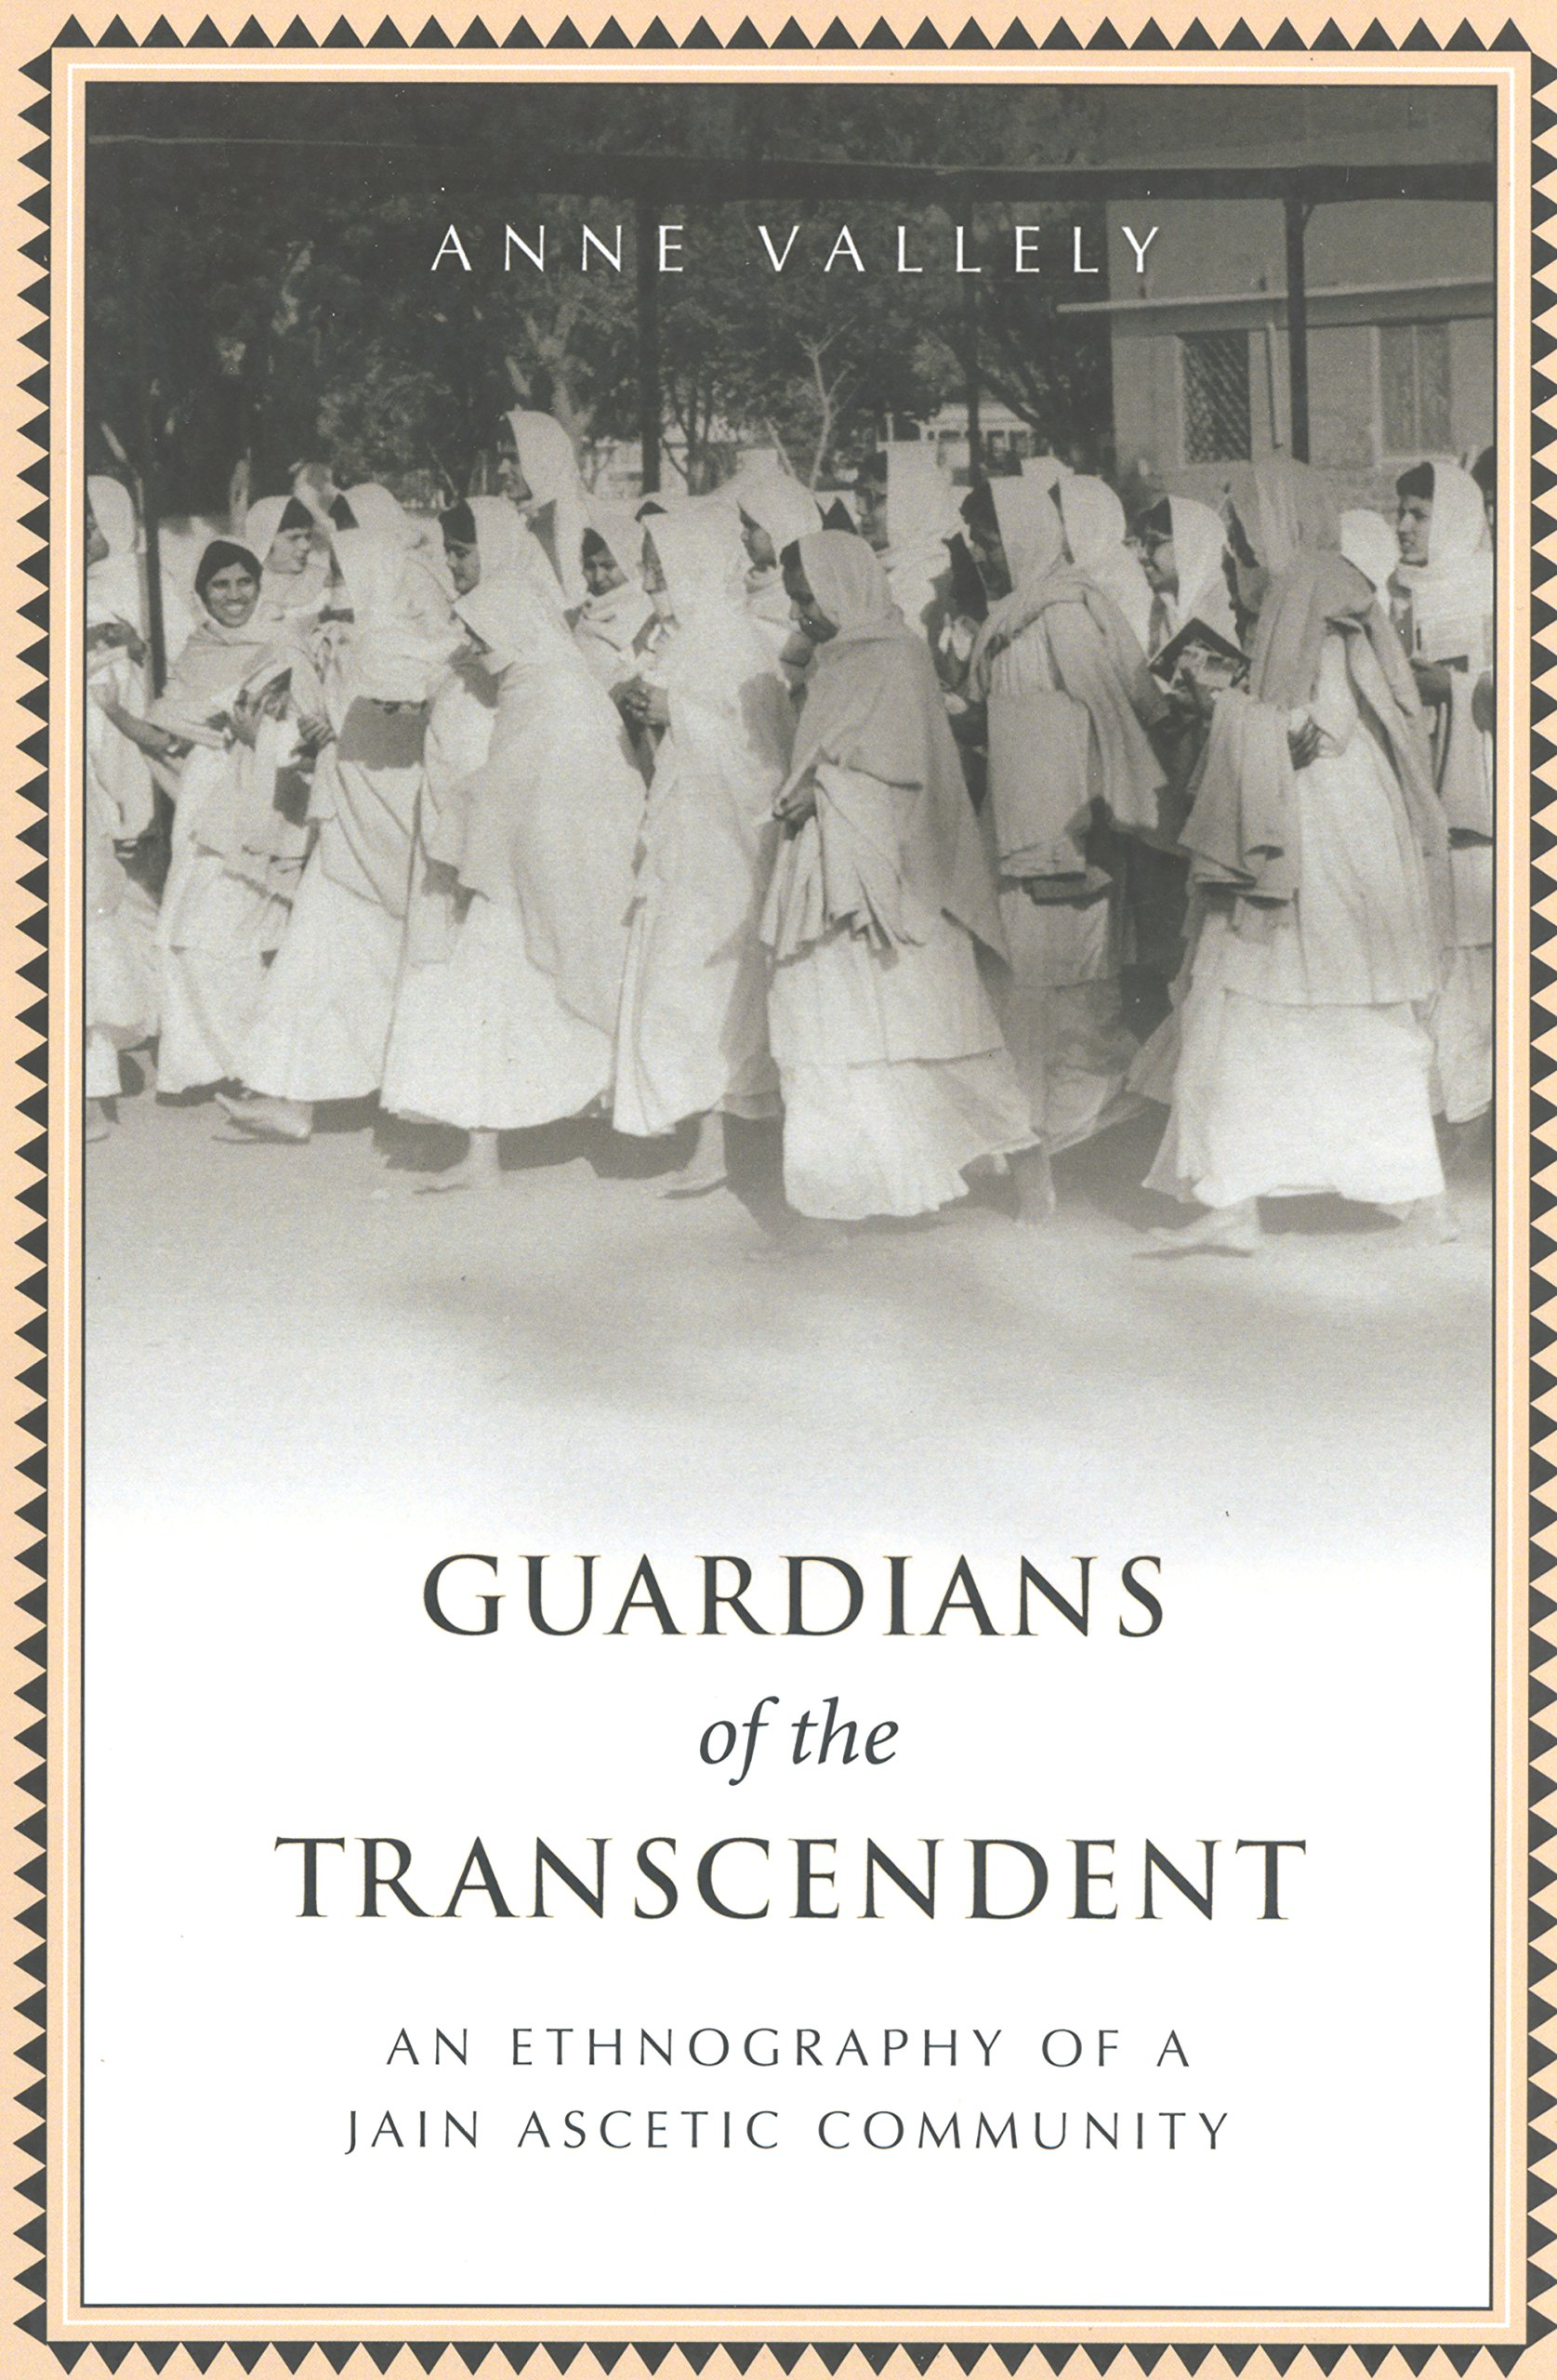 Guardians of the Transcendent: An Ethnography of a Jain Ascetic Community (Anthropological Horizons) pdf epub